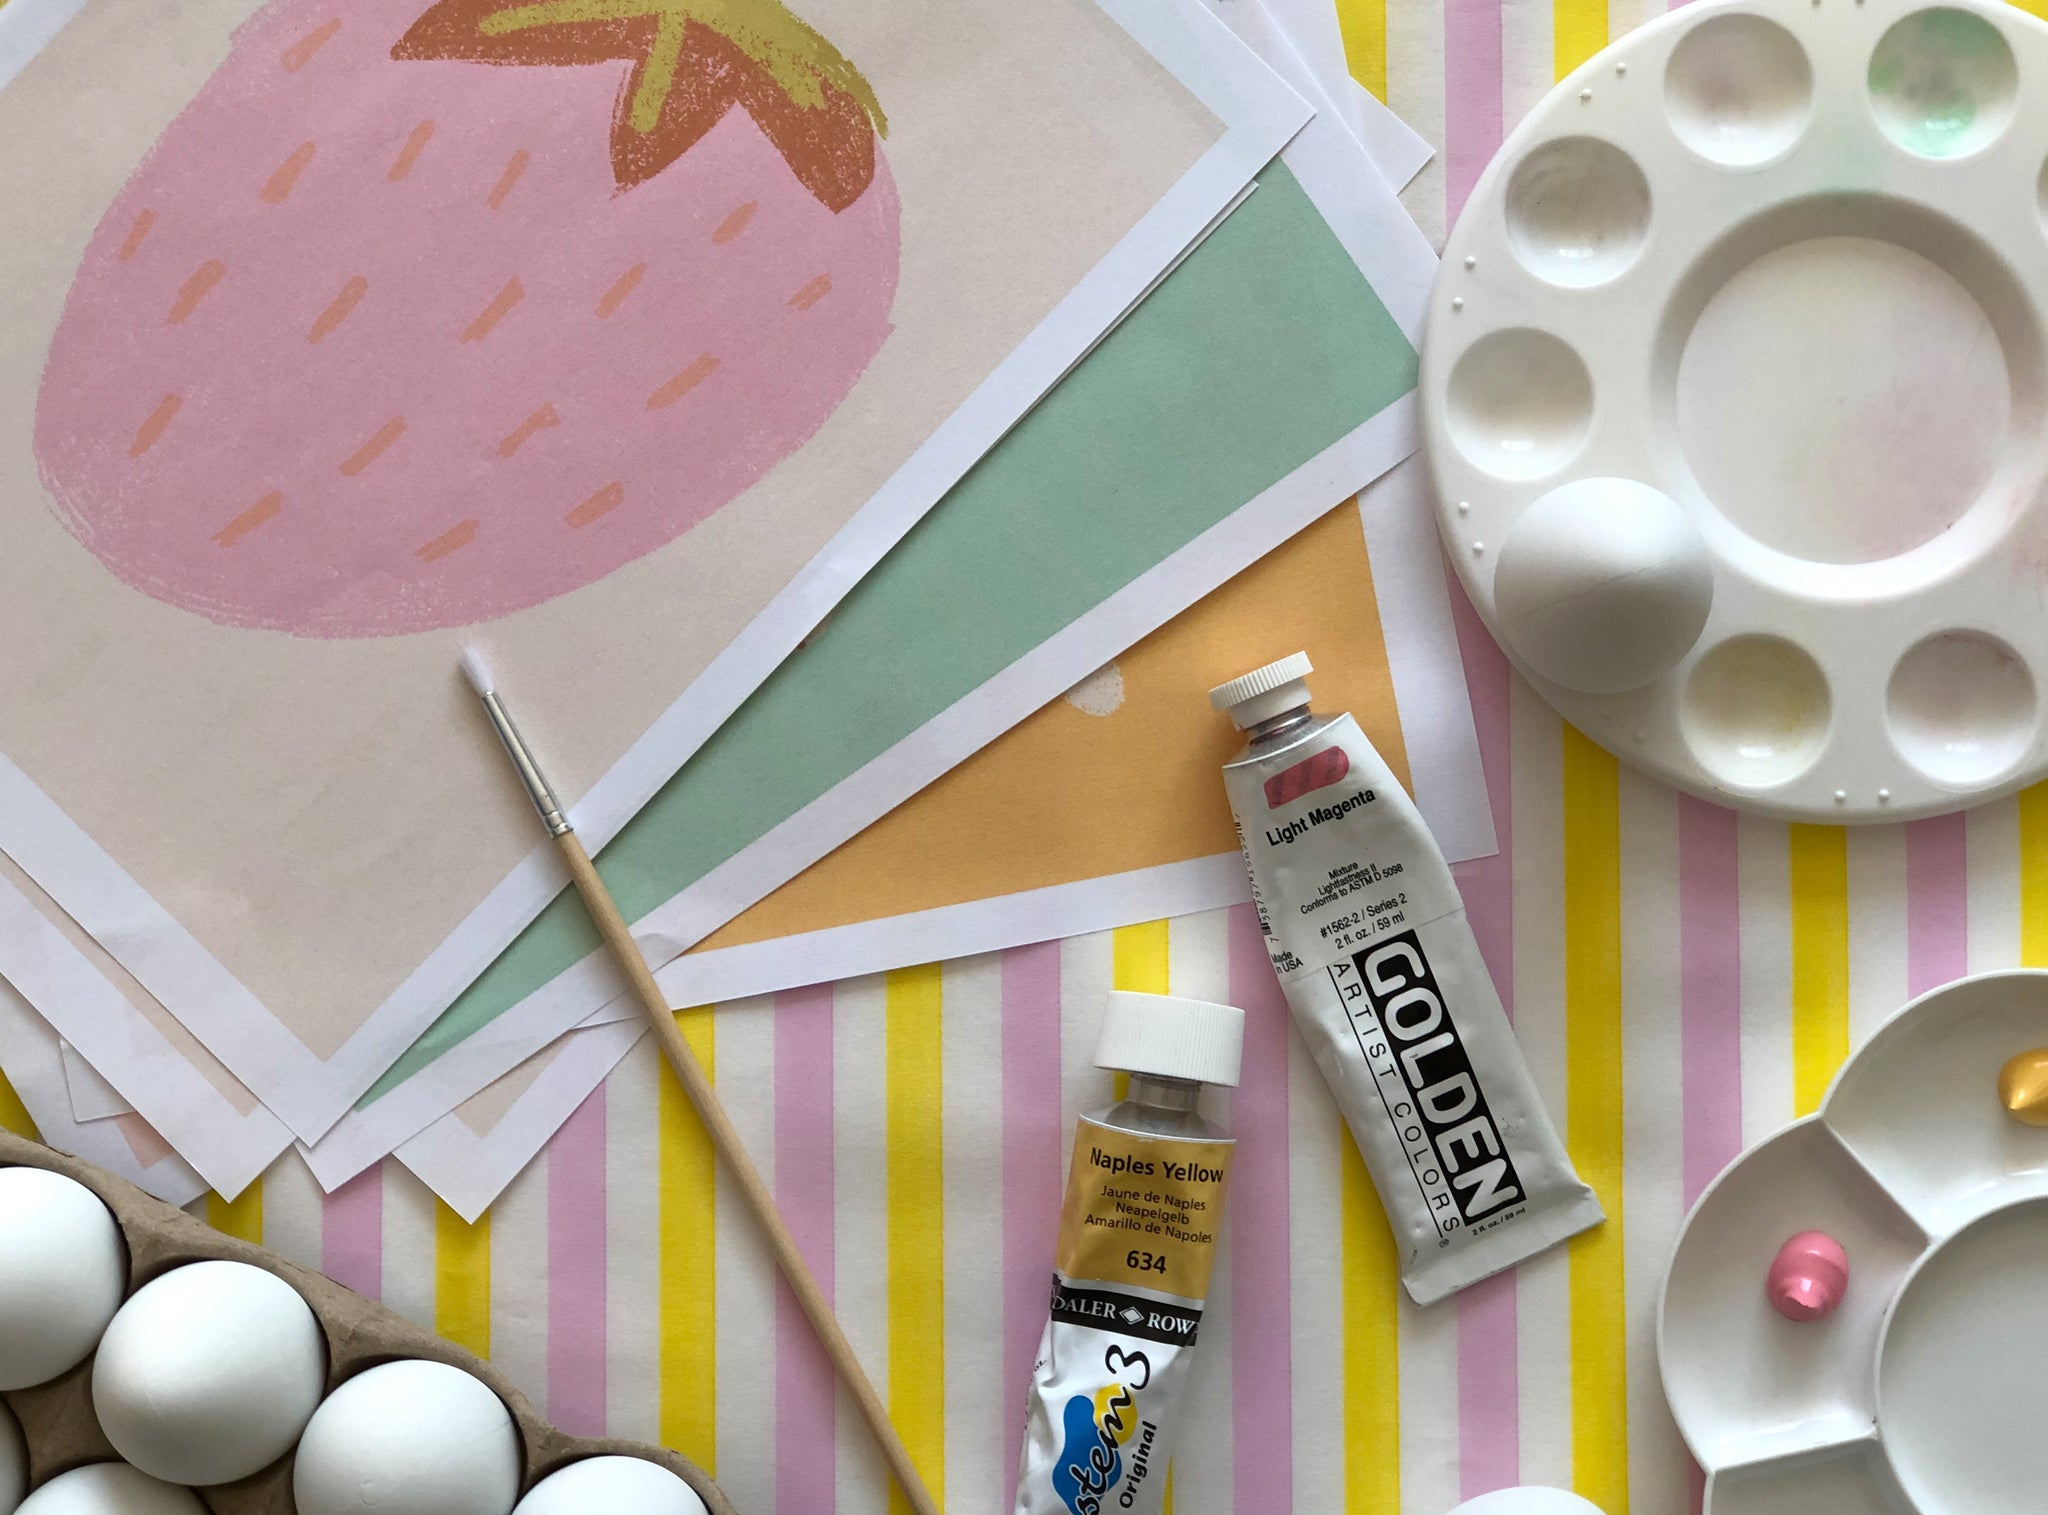 Easter Egg craft equipment including paint, paintbrushes and paint mixing palette